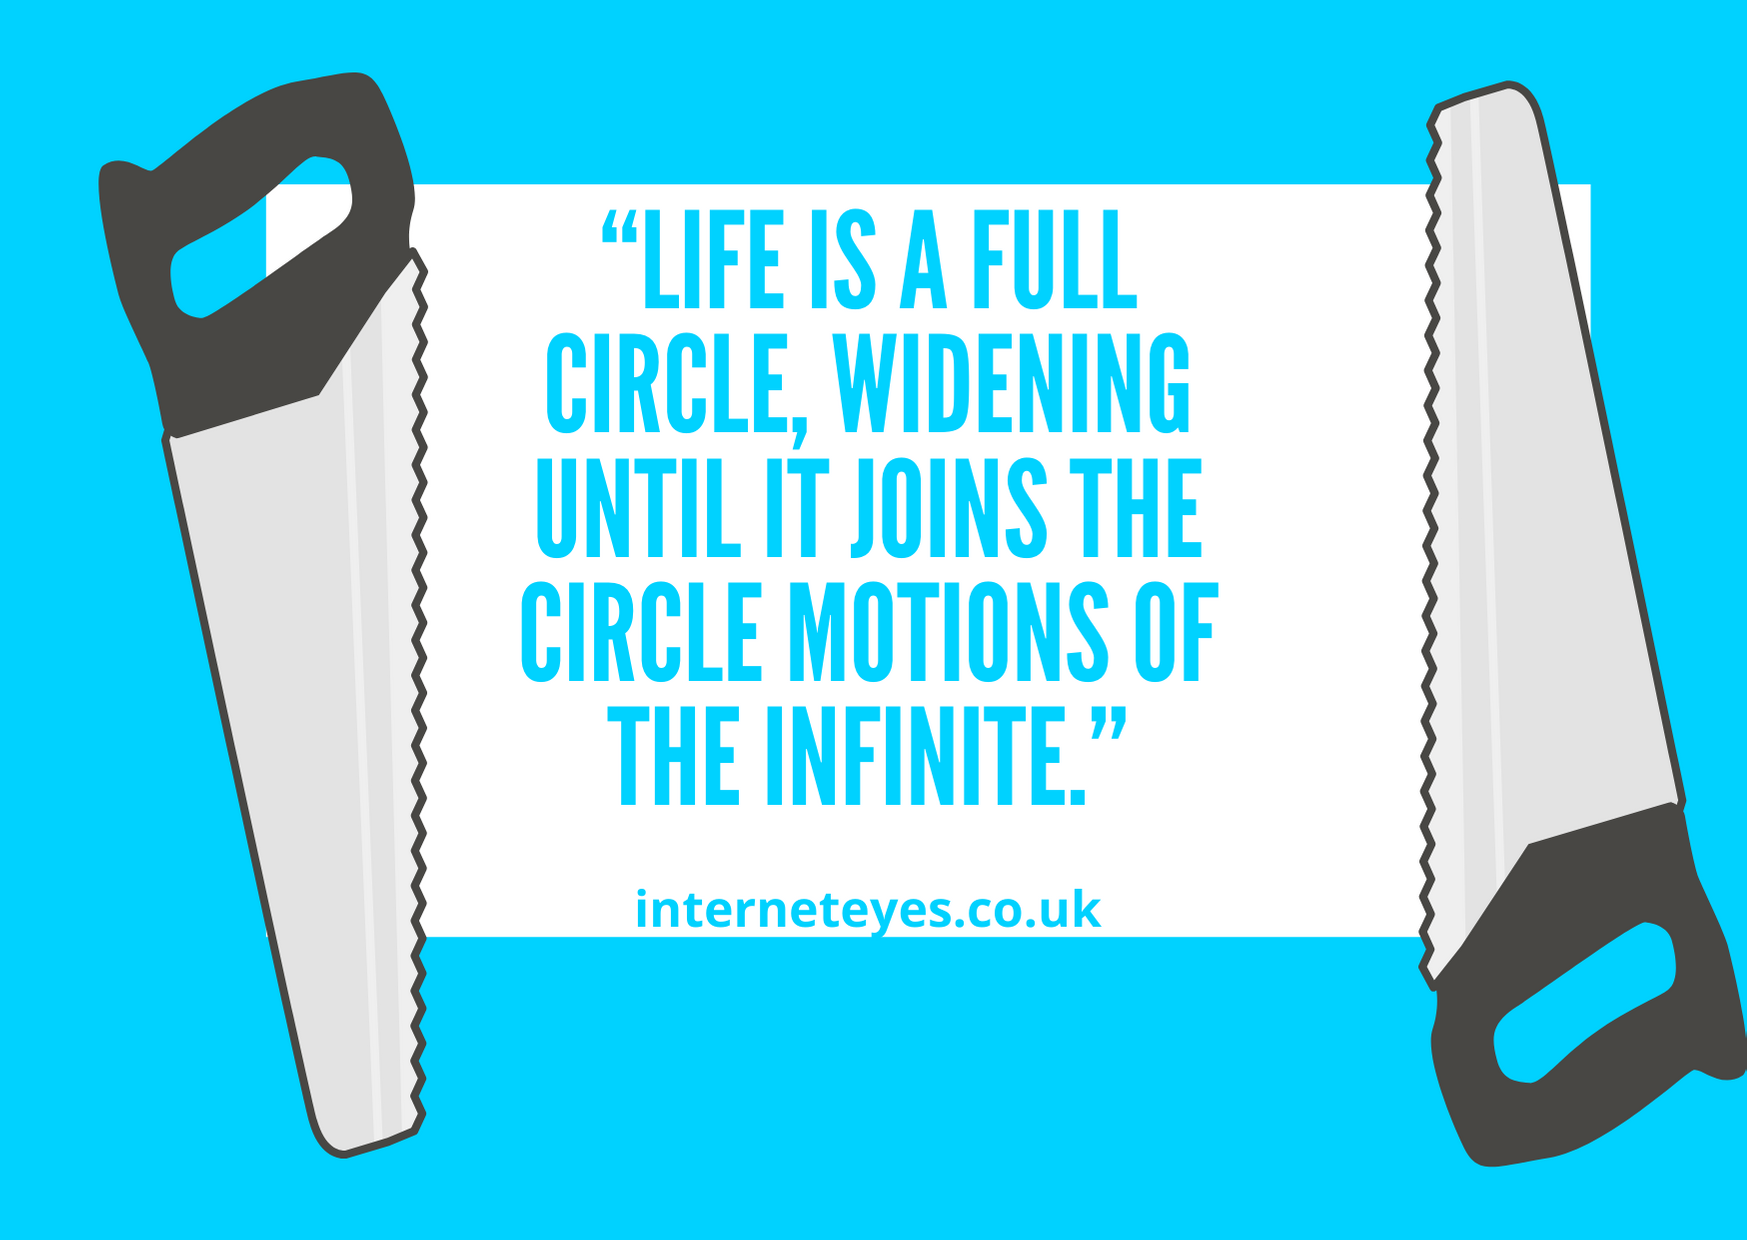 Circular saw quote image